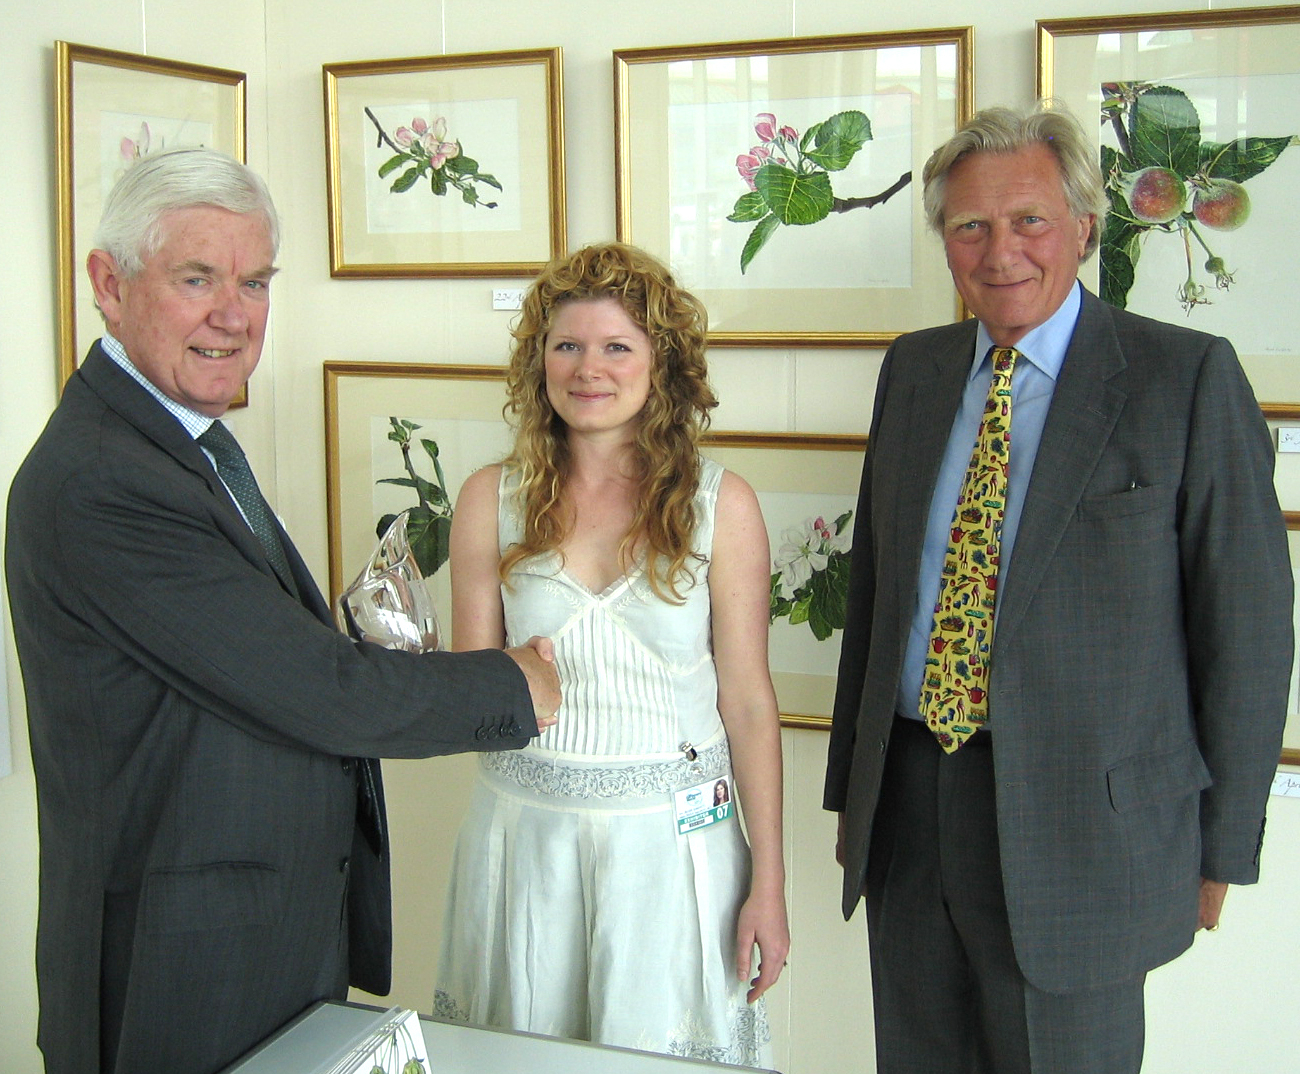 Anna being awarded the RHS Gold Medal